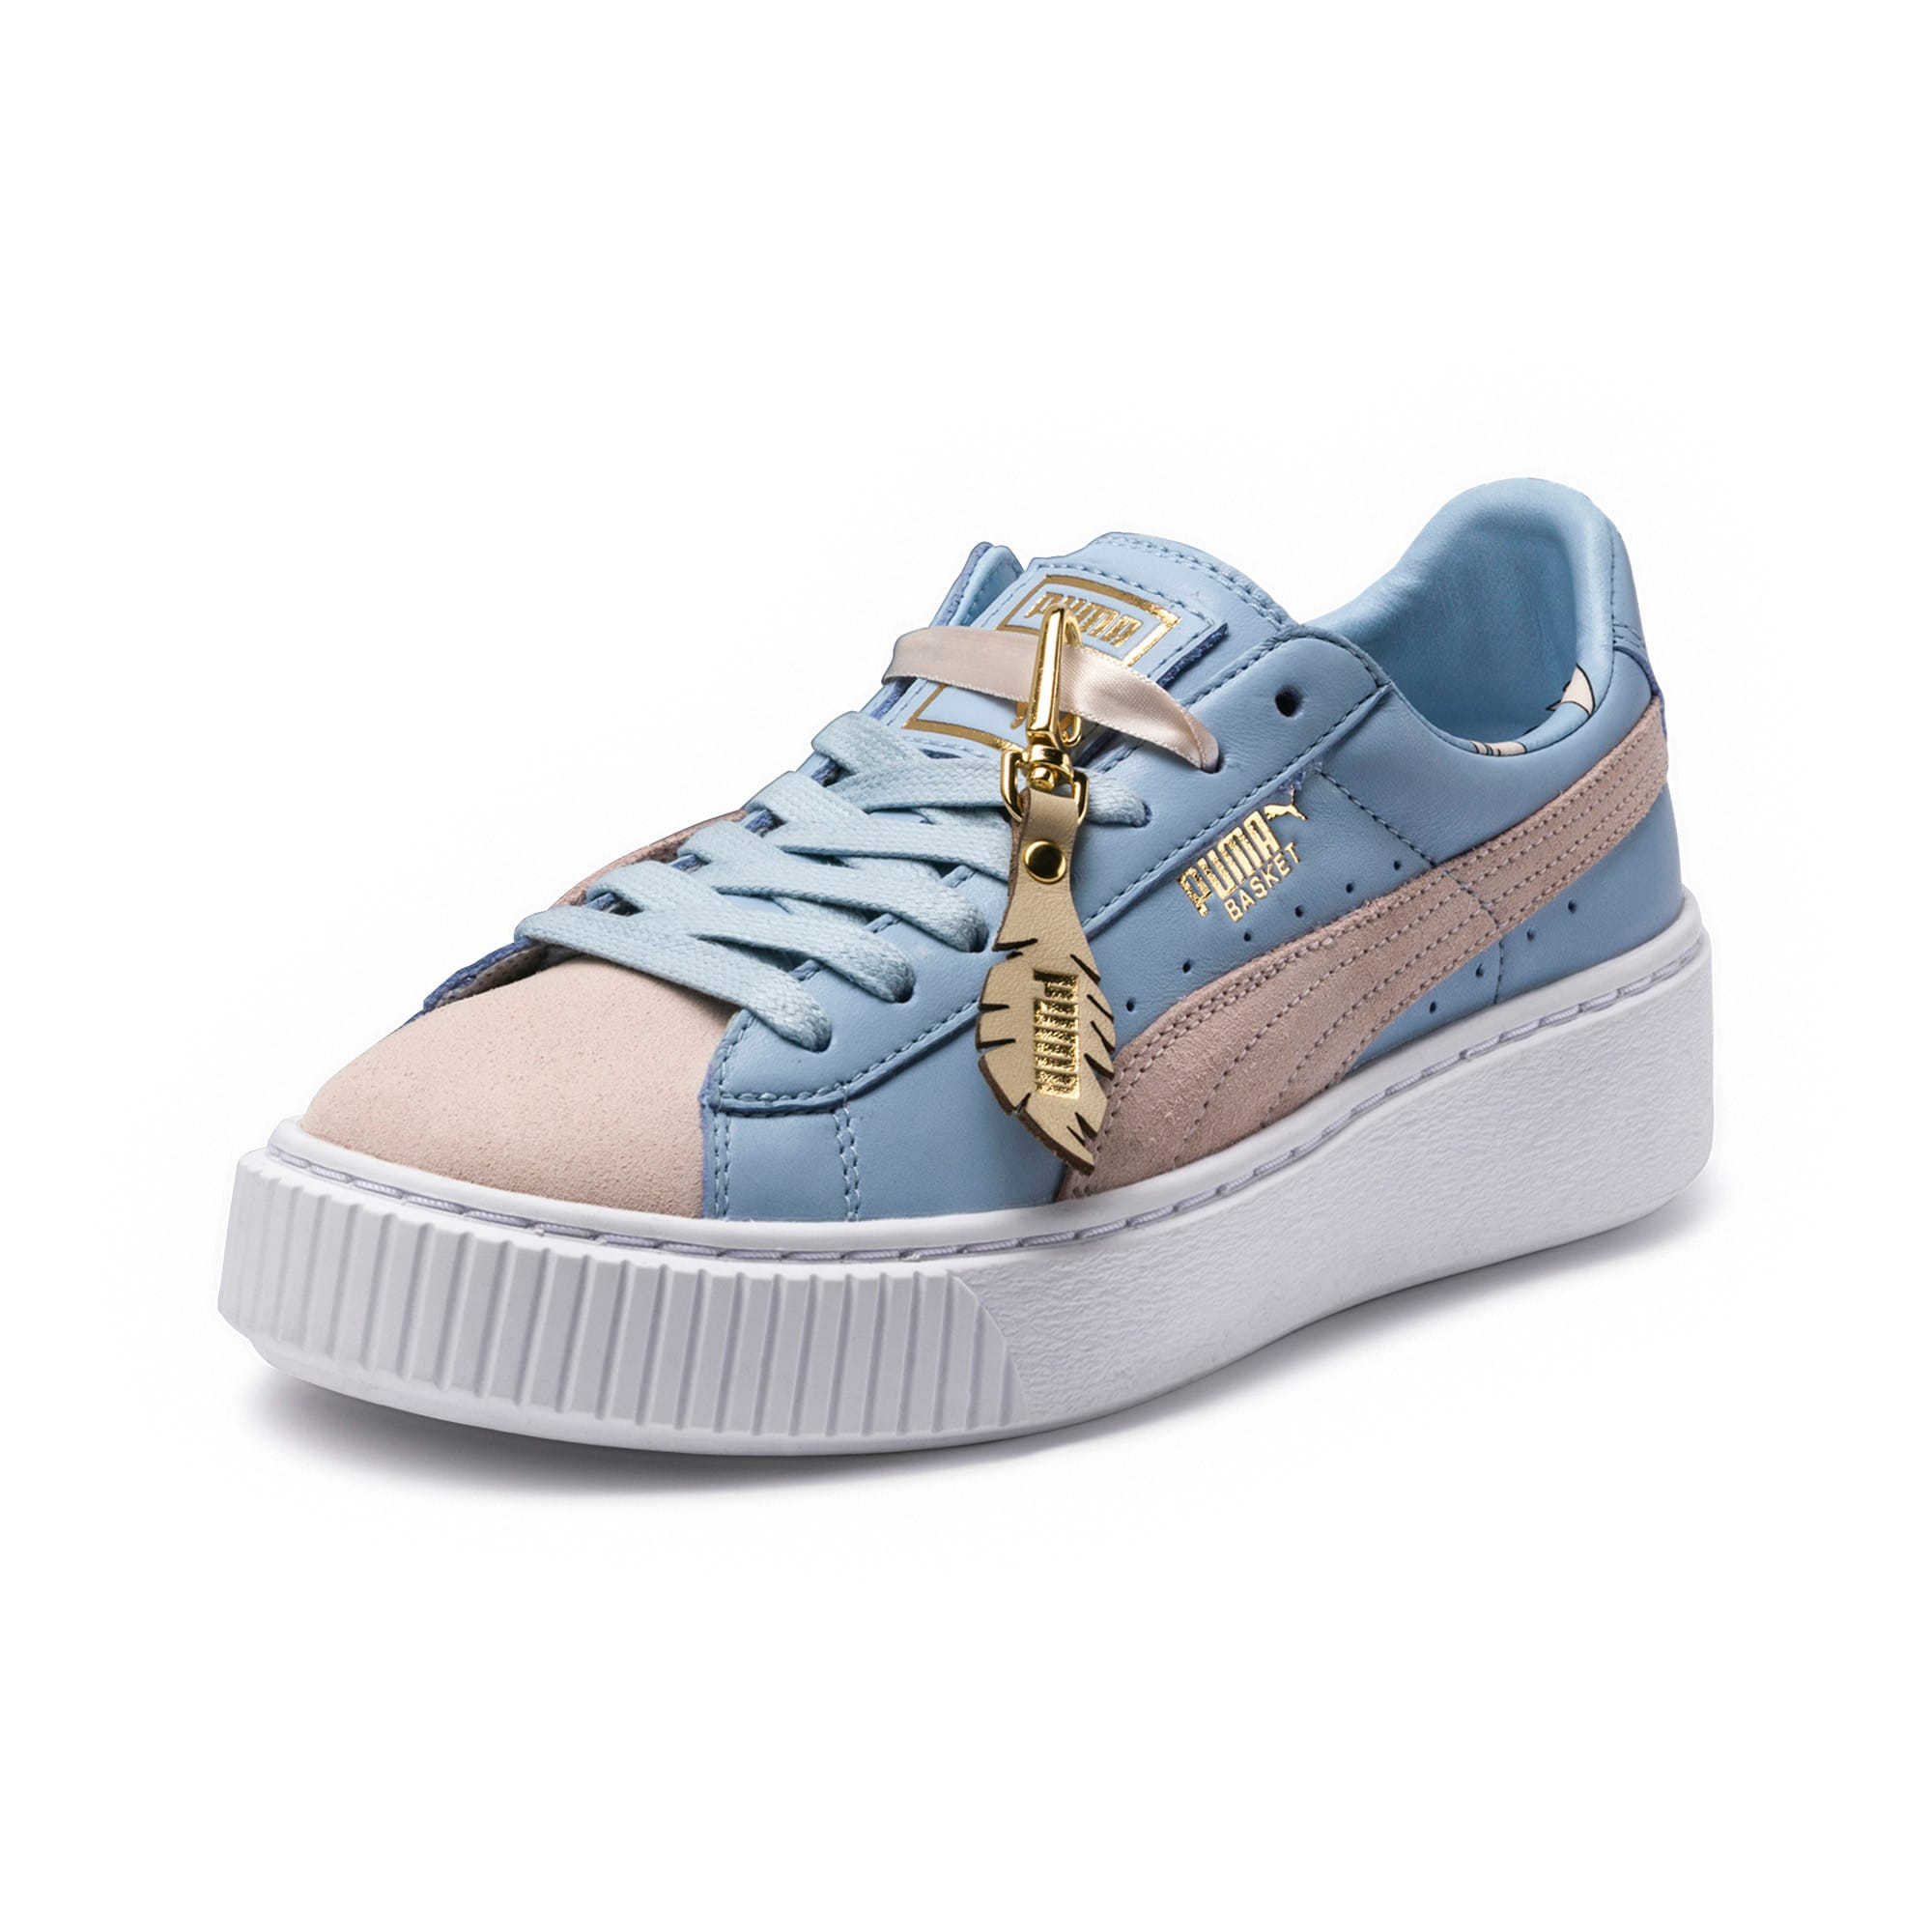 Thumbnail 1 of Basket Platform Coach Women's Trainers, Silver Peony-Cashmere Blue, medium-IND